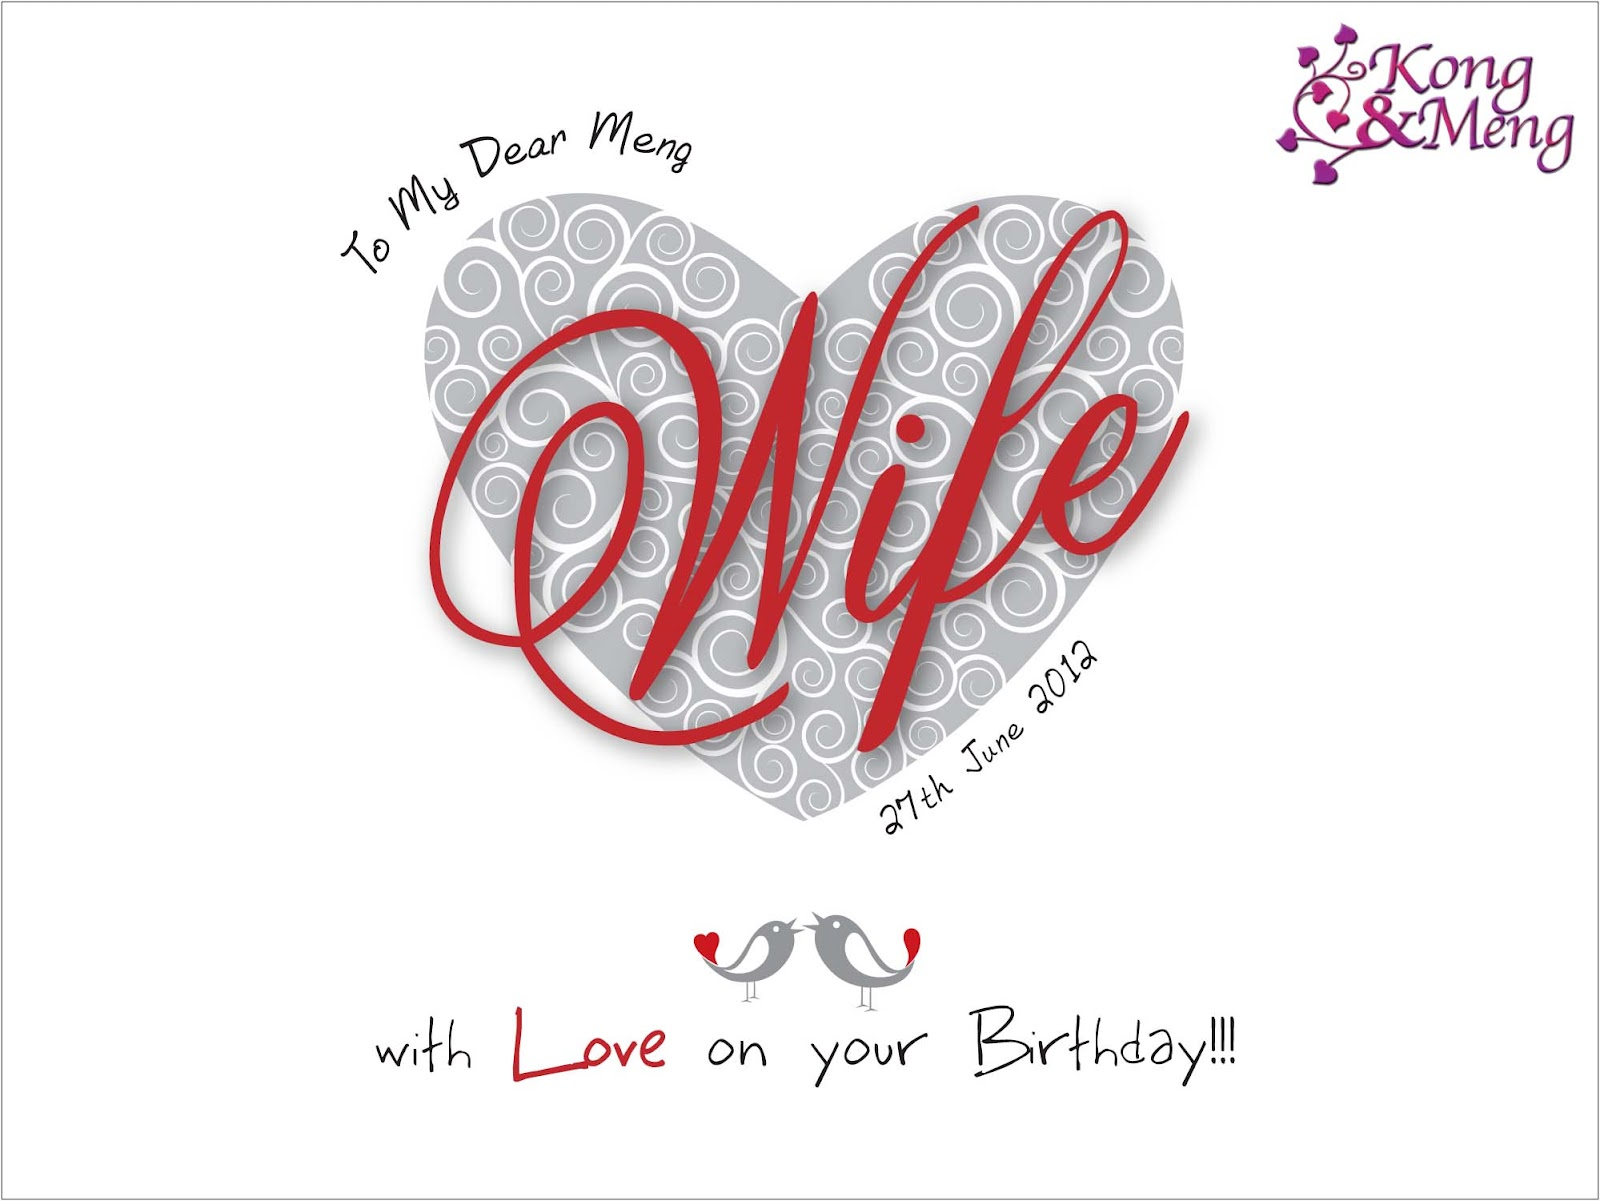 Luxury birthday cards for wife images laughterisaleap wife birthday card 2012 bookmarktalkfo Images